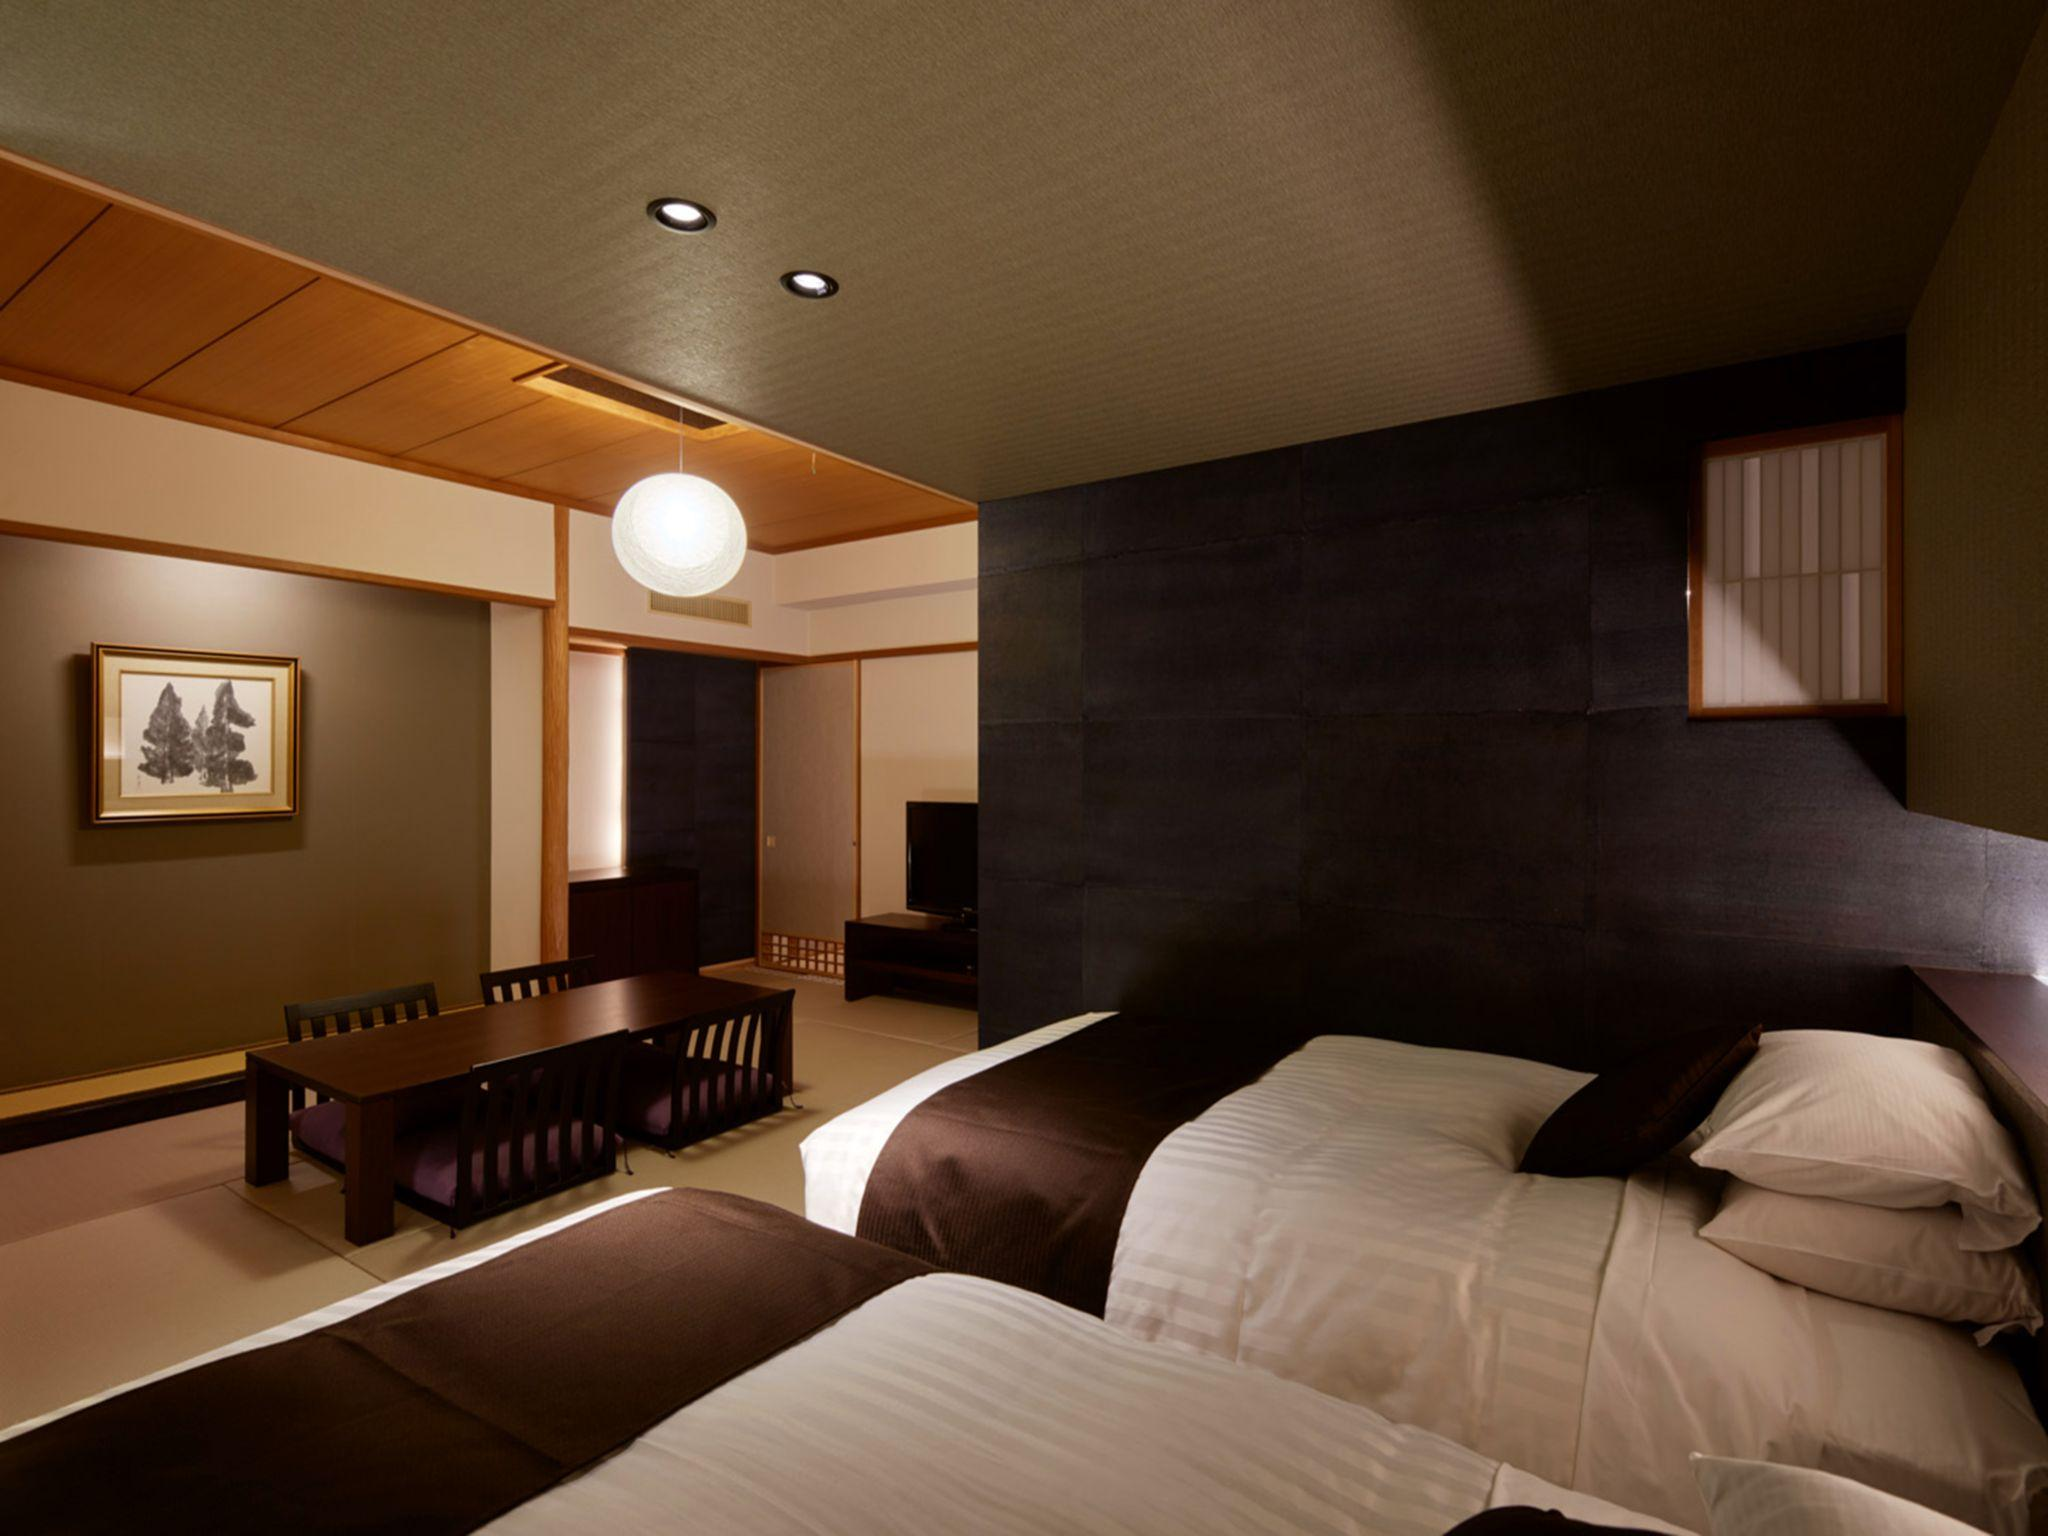 Habitación de estilo japonés occidental para 4 personas ‒ No fumadores (Japanese Western Style Room for 4 People - Non-Smoking)